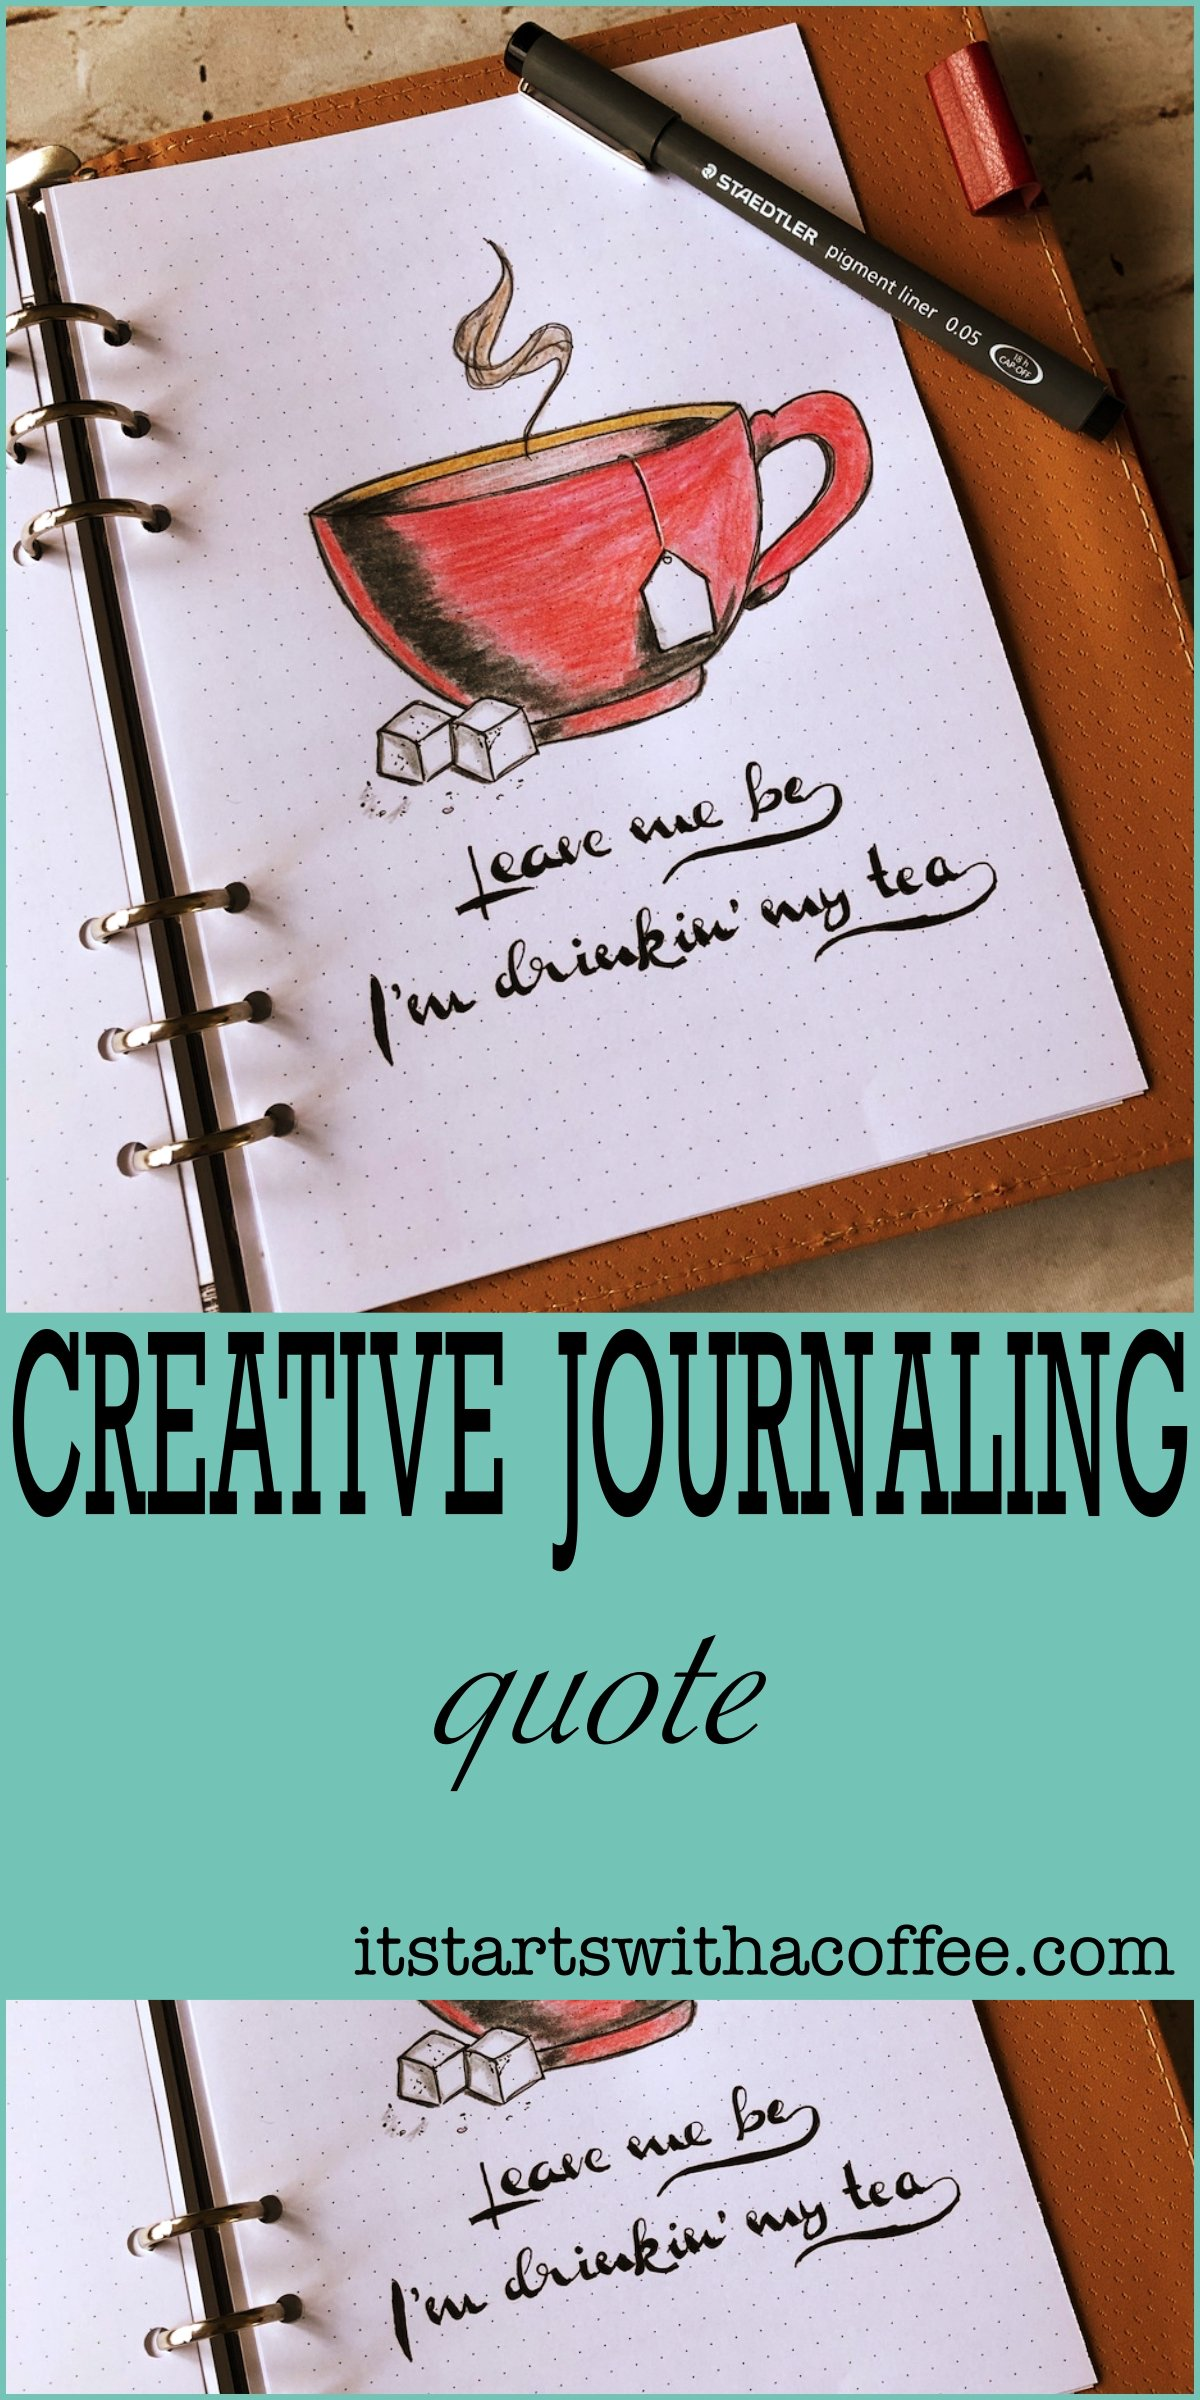 Creative journaling - Quote #3 - Leave me be I'm drinkin' my tea - itstartswithacoffee.com #creativejournaling #quote #tea #journaling